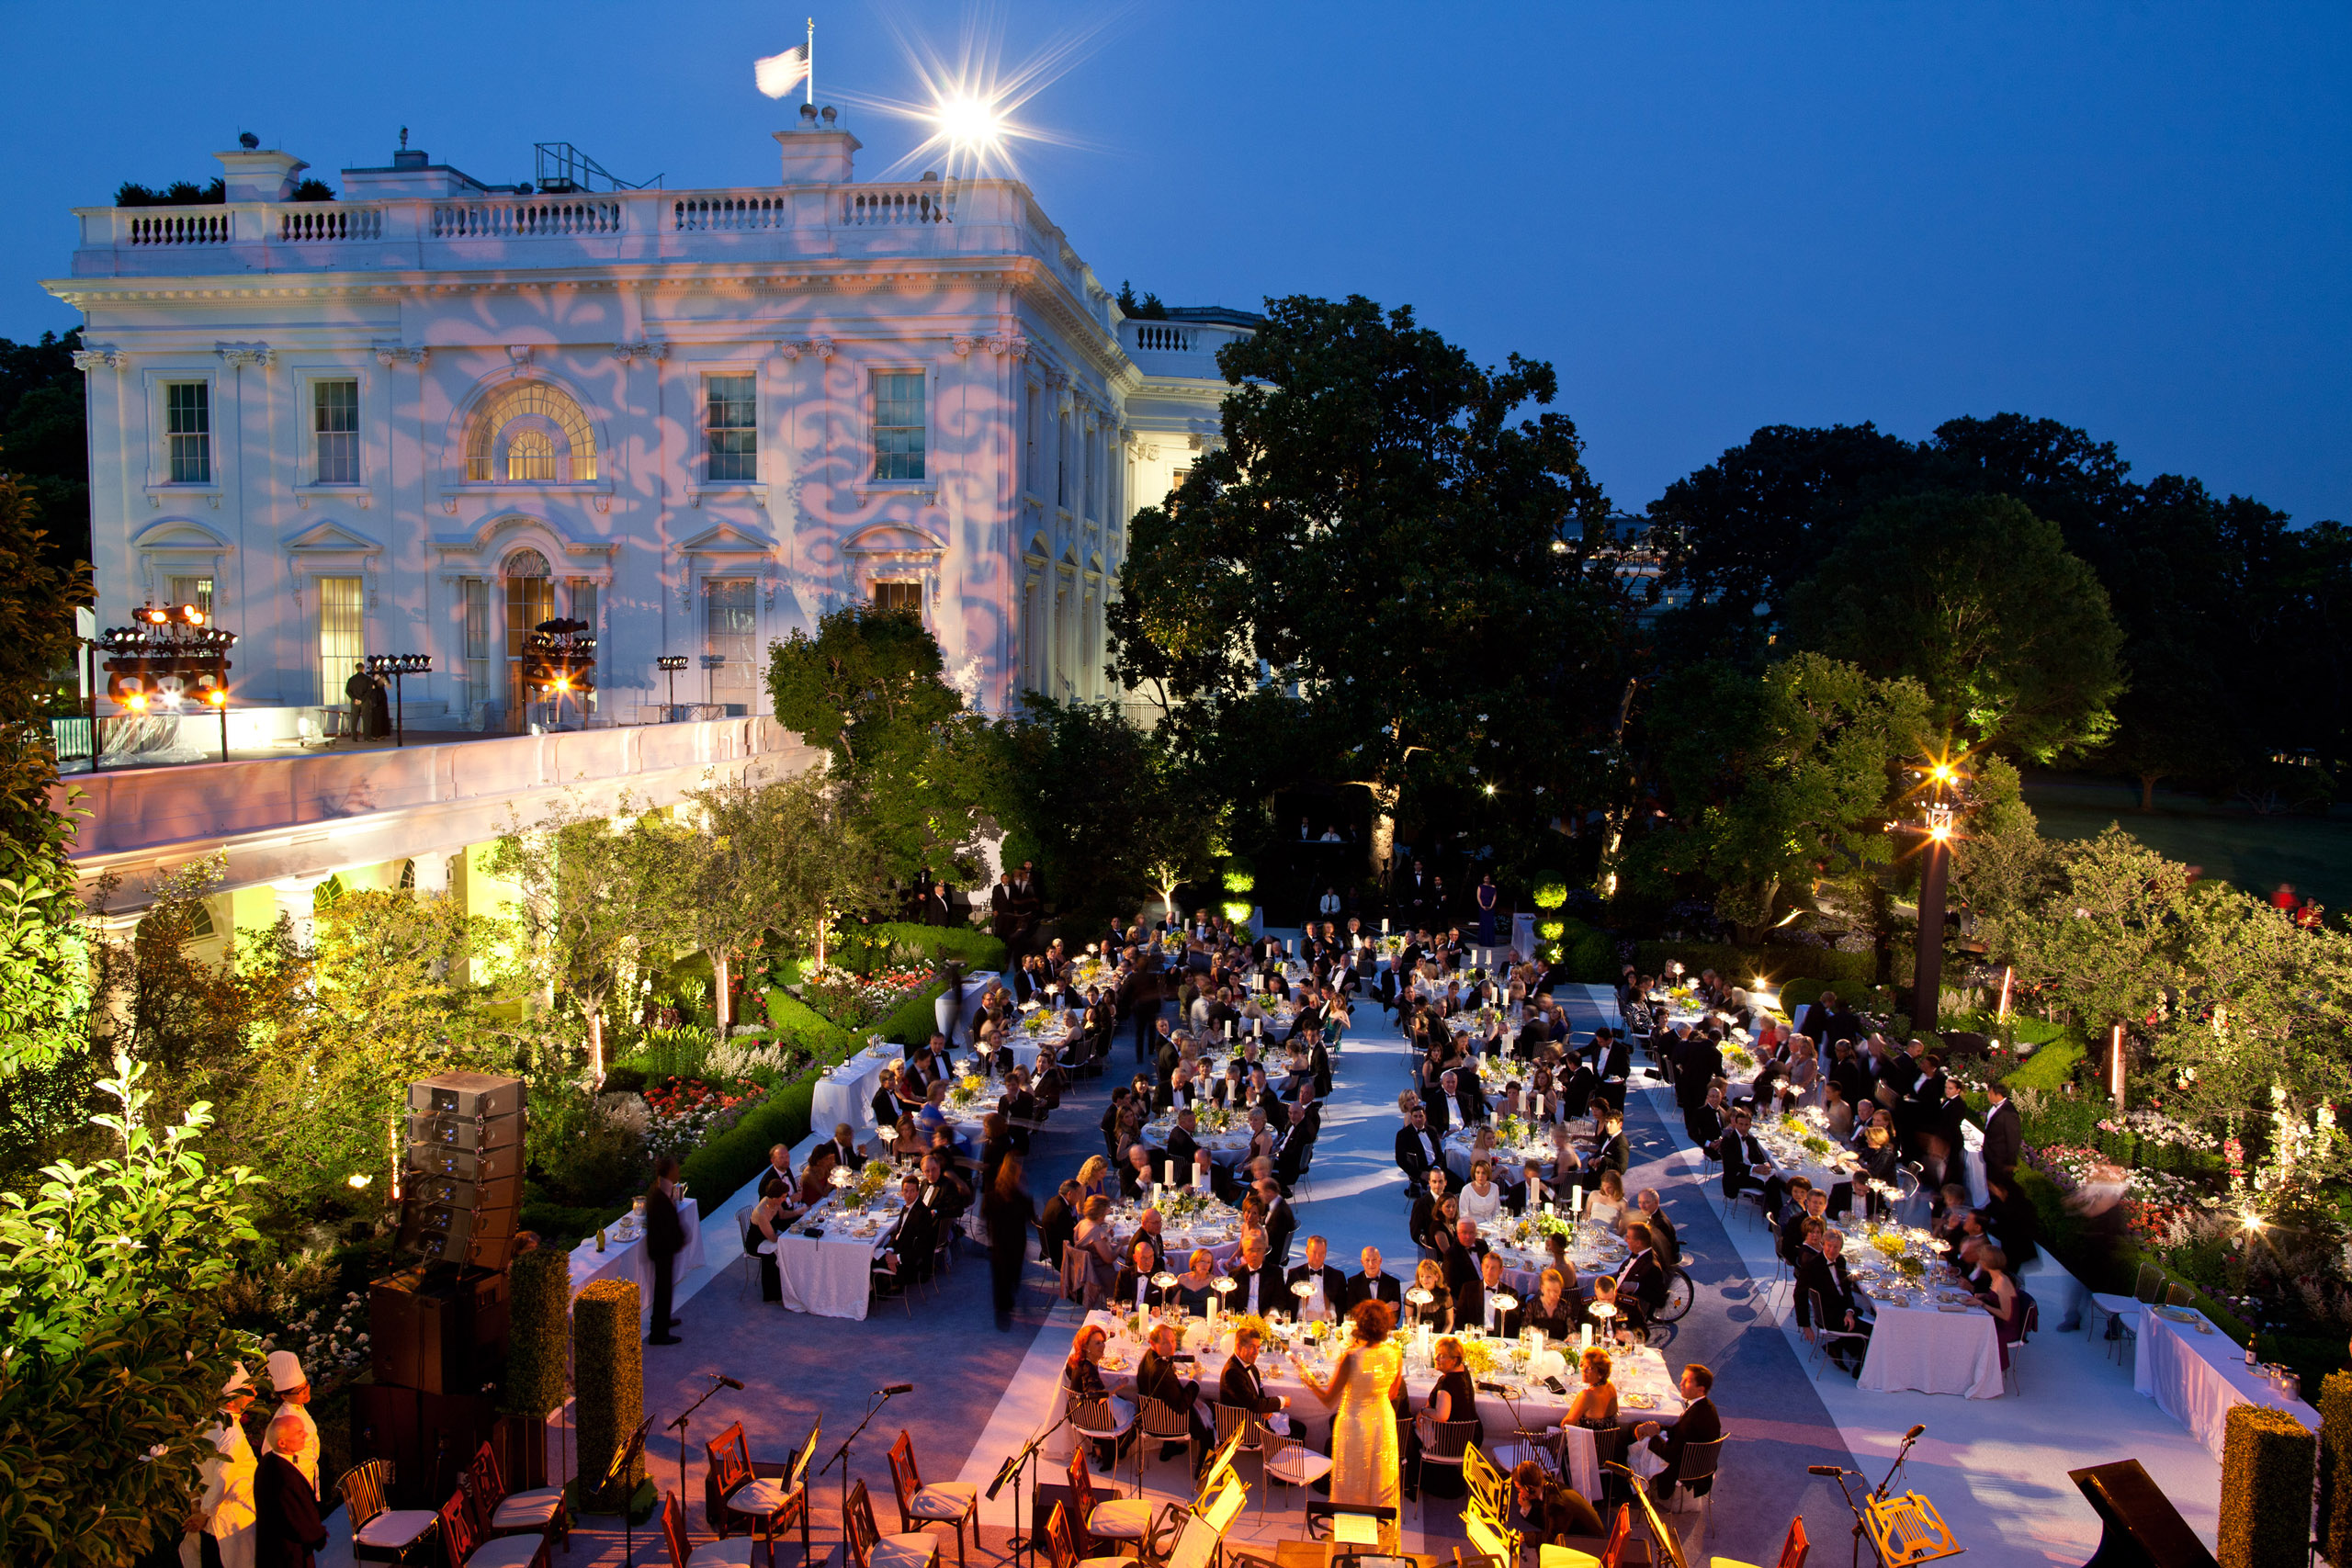 This photograph was taken from the roof above the Oval Office of the Rose Garden during a State Dinner in honor of Chancellor Angela Merkel of Germany and her husband, Dr. Joachim Sauer,  June 7, 2011.